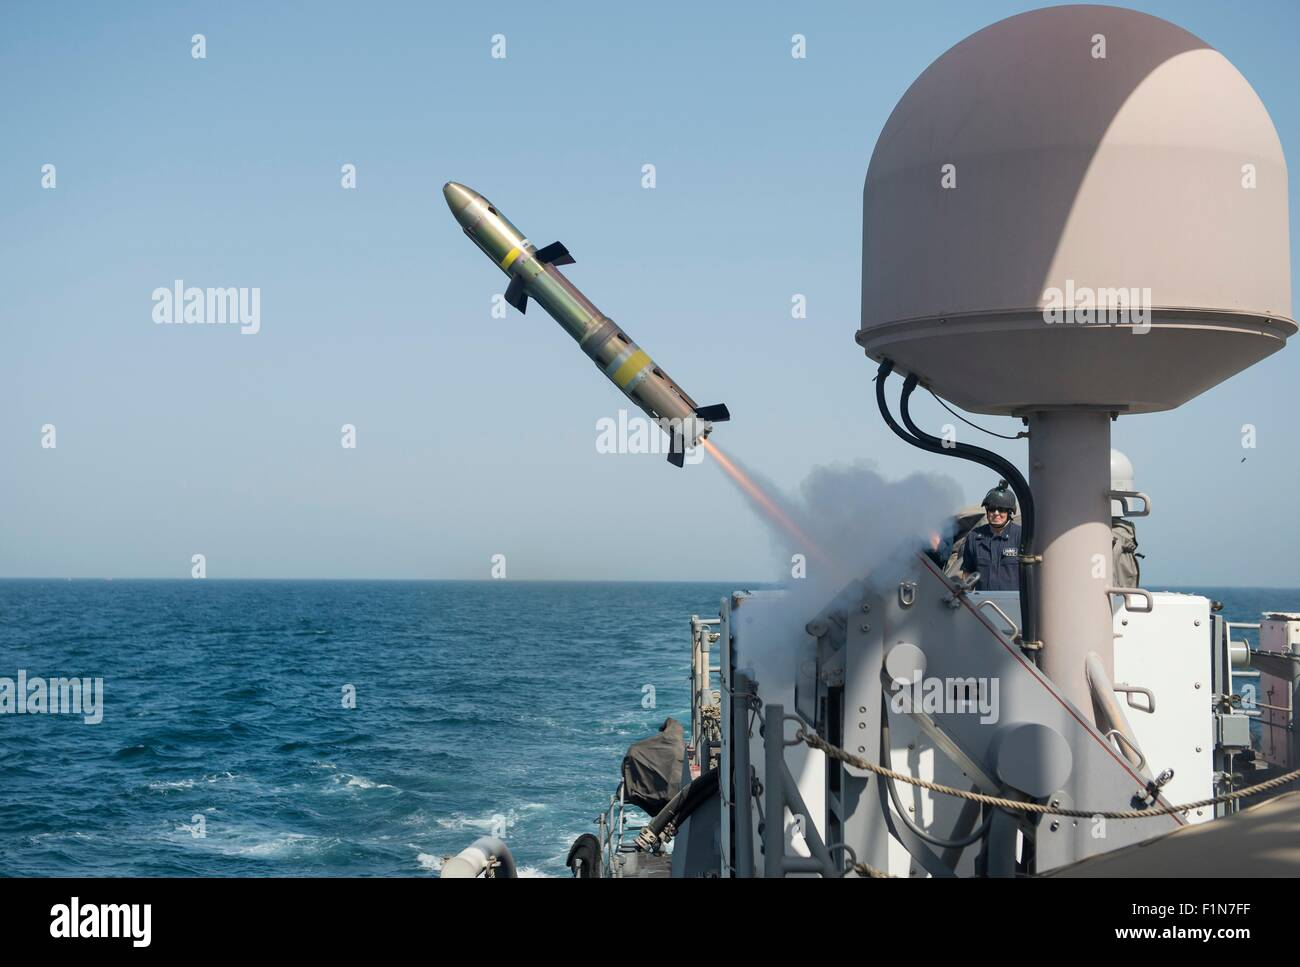 US Navy coastal patrol ship USS Firebolt fires a Griffin Missile during a test and proficiency fire June 28, 2015 - Stock Image